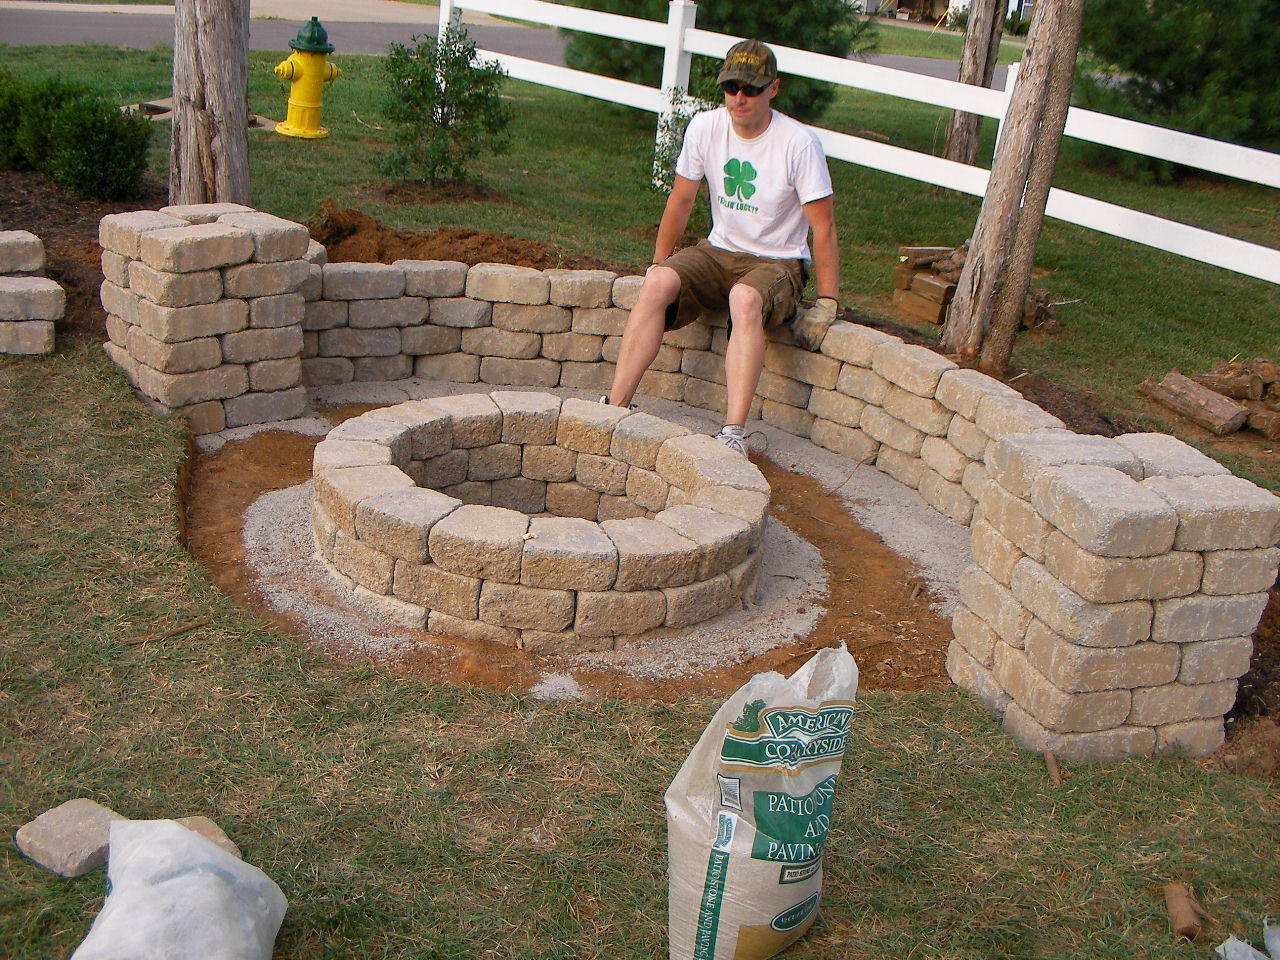 Best ideas about DIY Small Fire Pit . Save or Pin Creatively Luxurious DIY Fire Pit Project Here to Enhance Now.